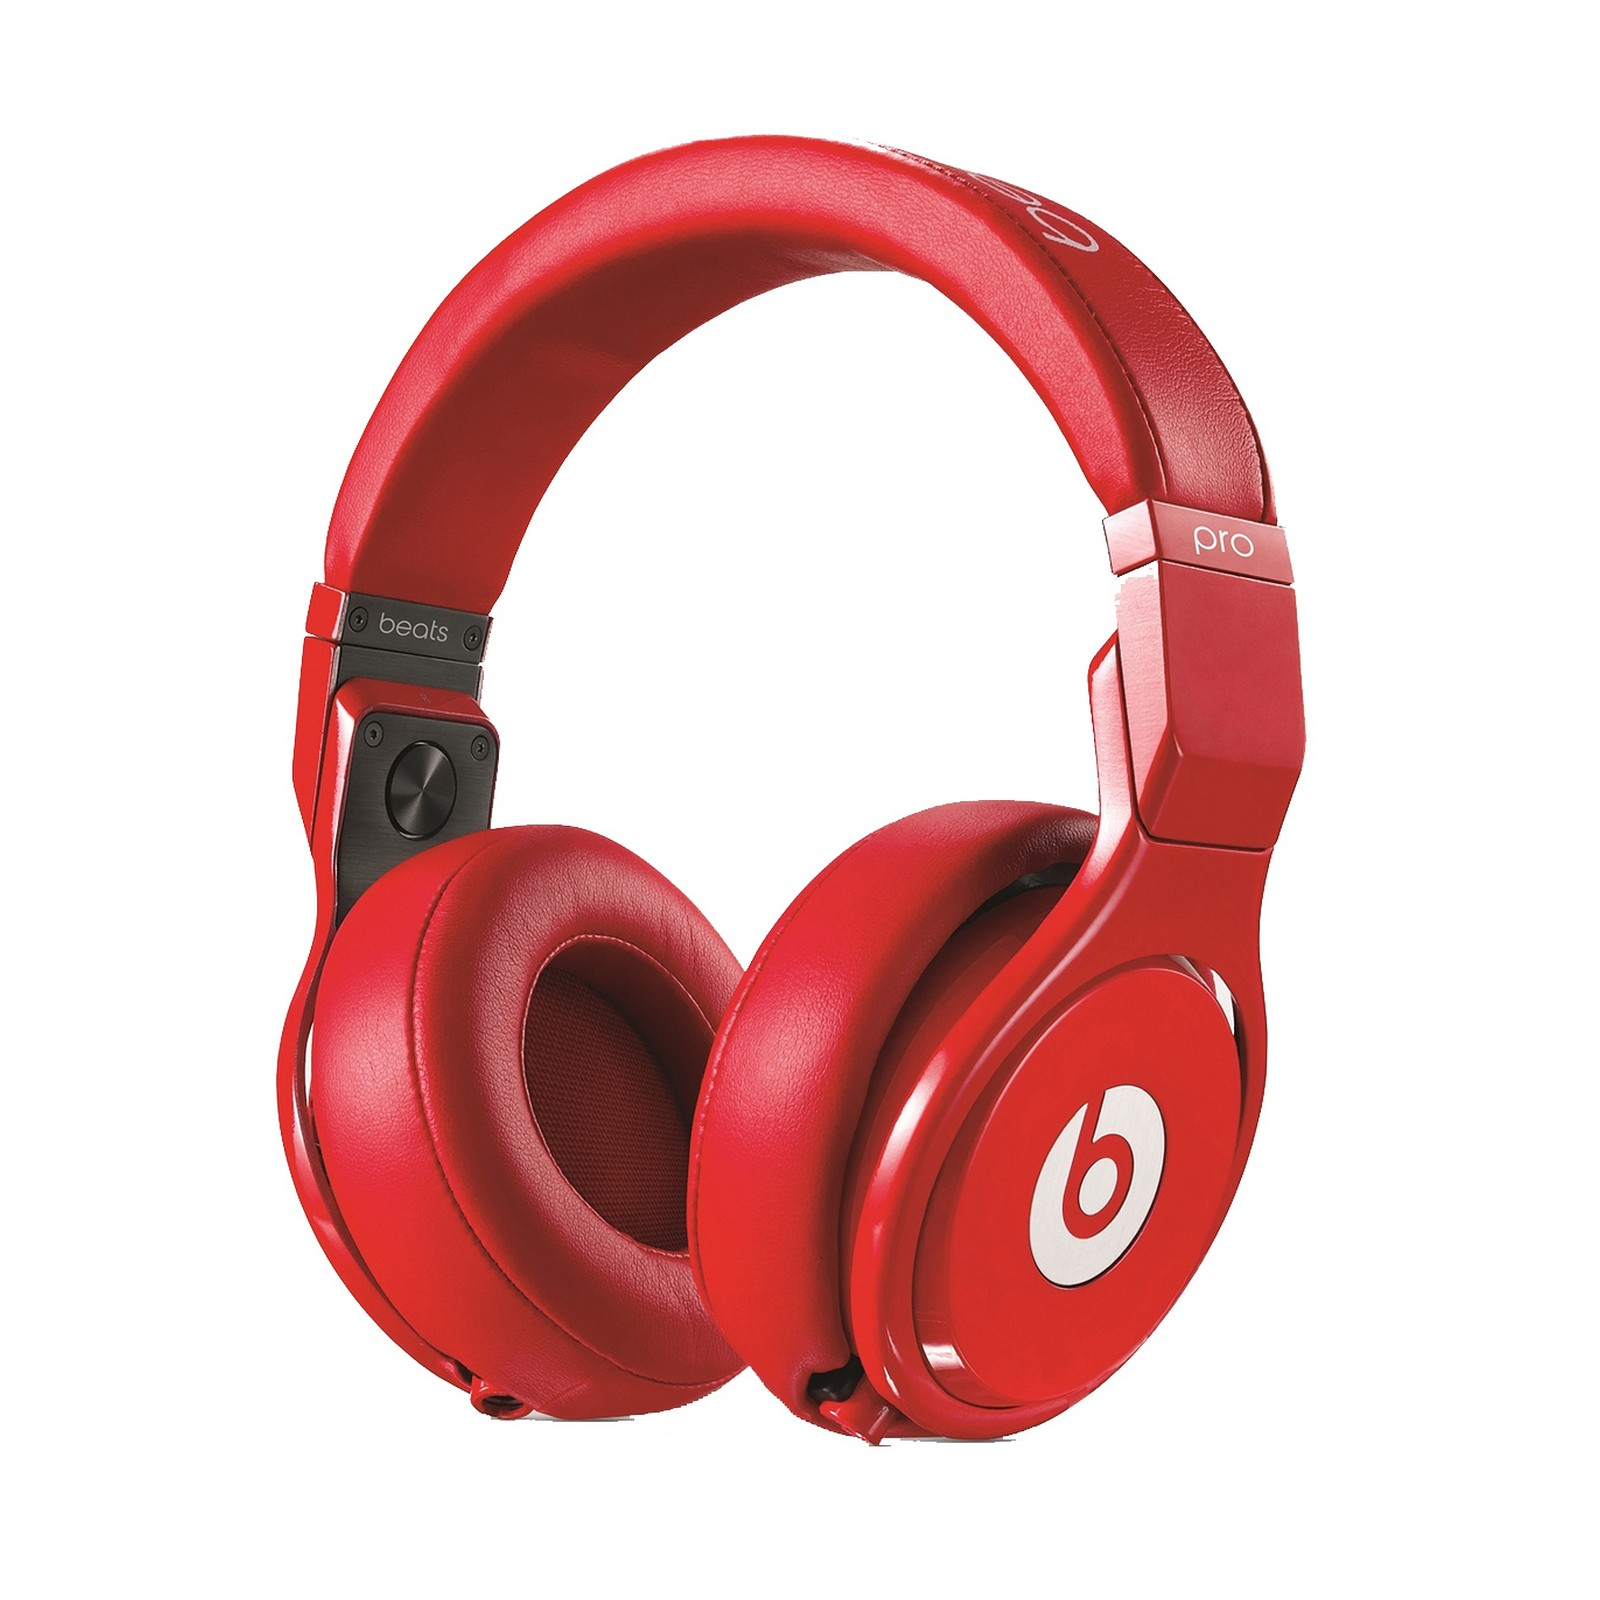 Beats by Dr. Dre Pro Lil Wayne Red | Over Ear Headphone